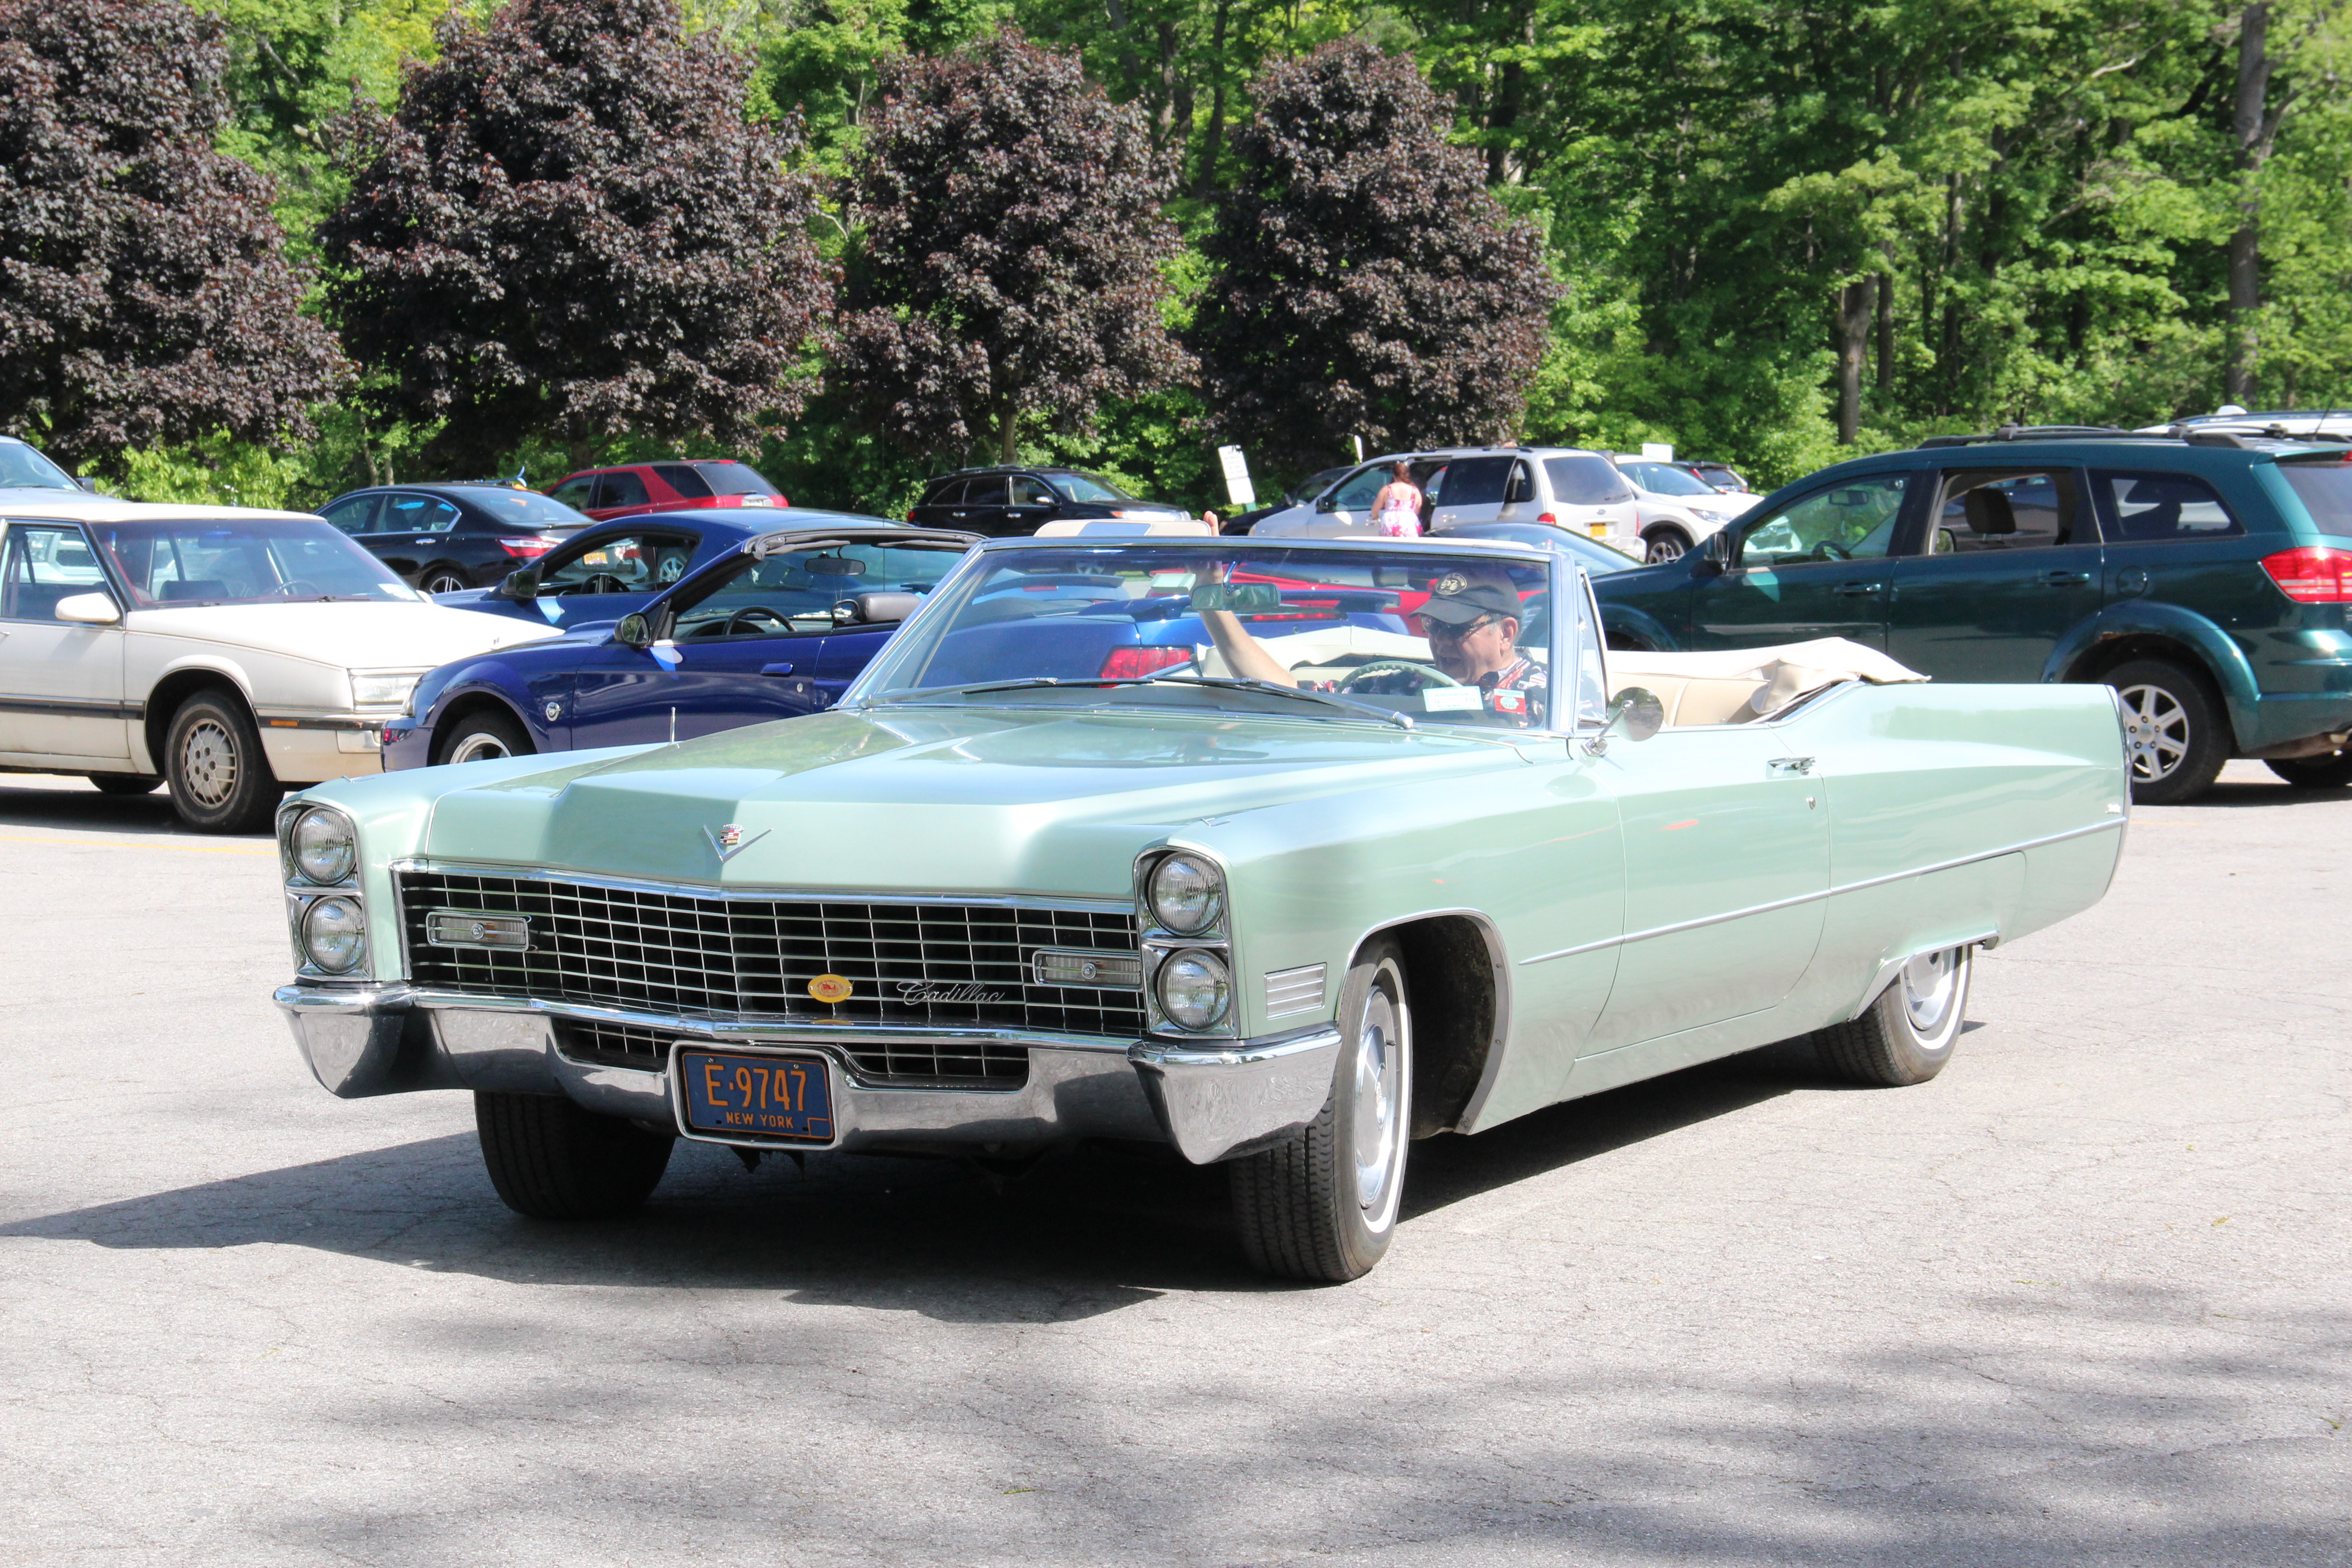 IMG_0767-Class-1B-Al-Forster-1967-Cadillac